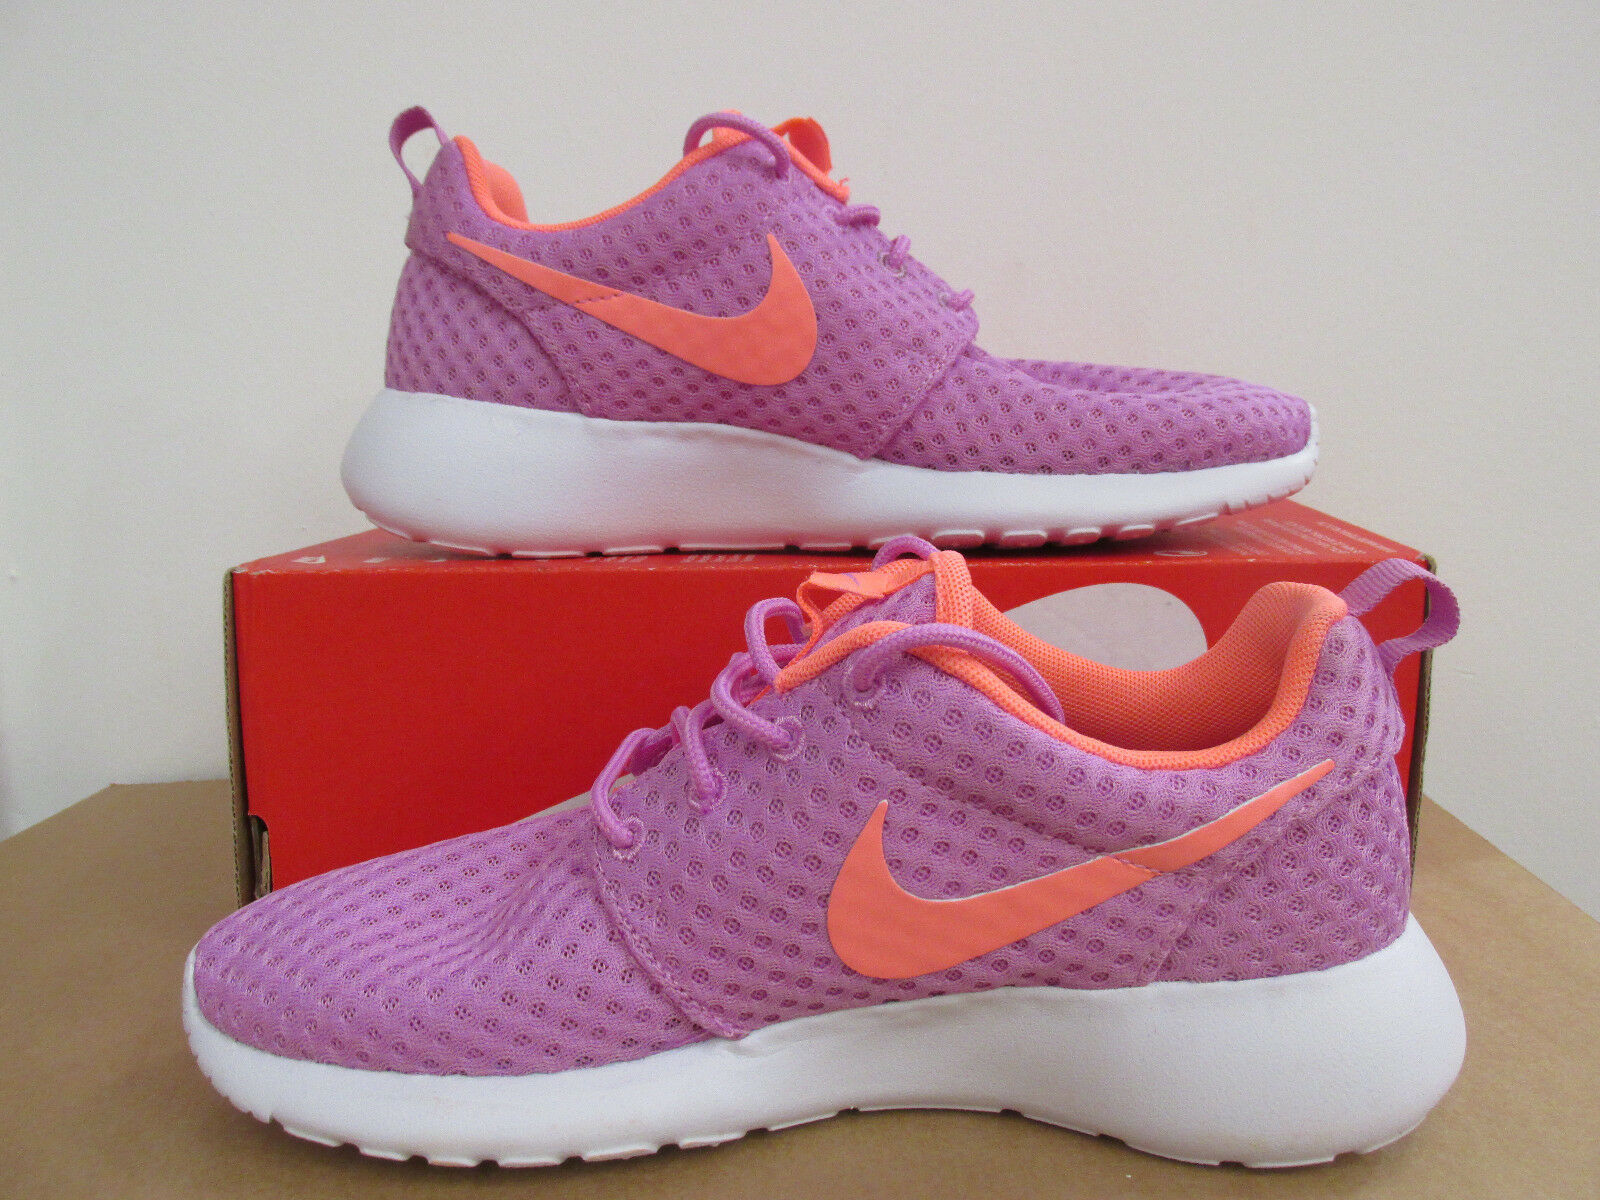 Nike womens rosherun BR running trainers 724850 581 sneakers shoes CLEARANCE